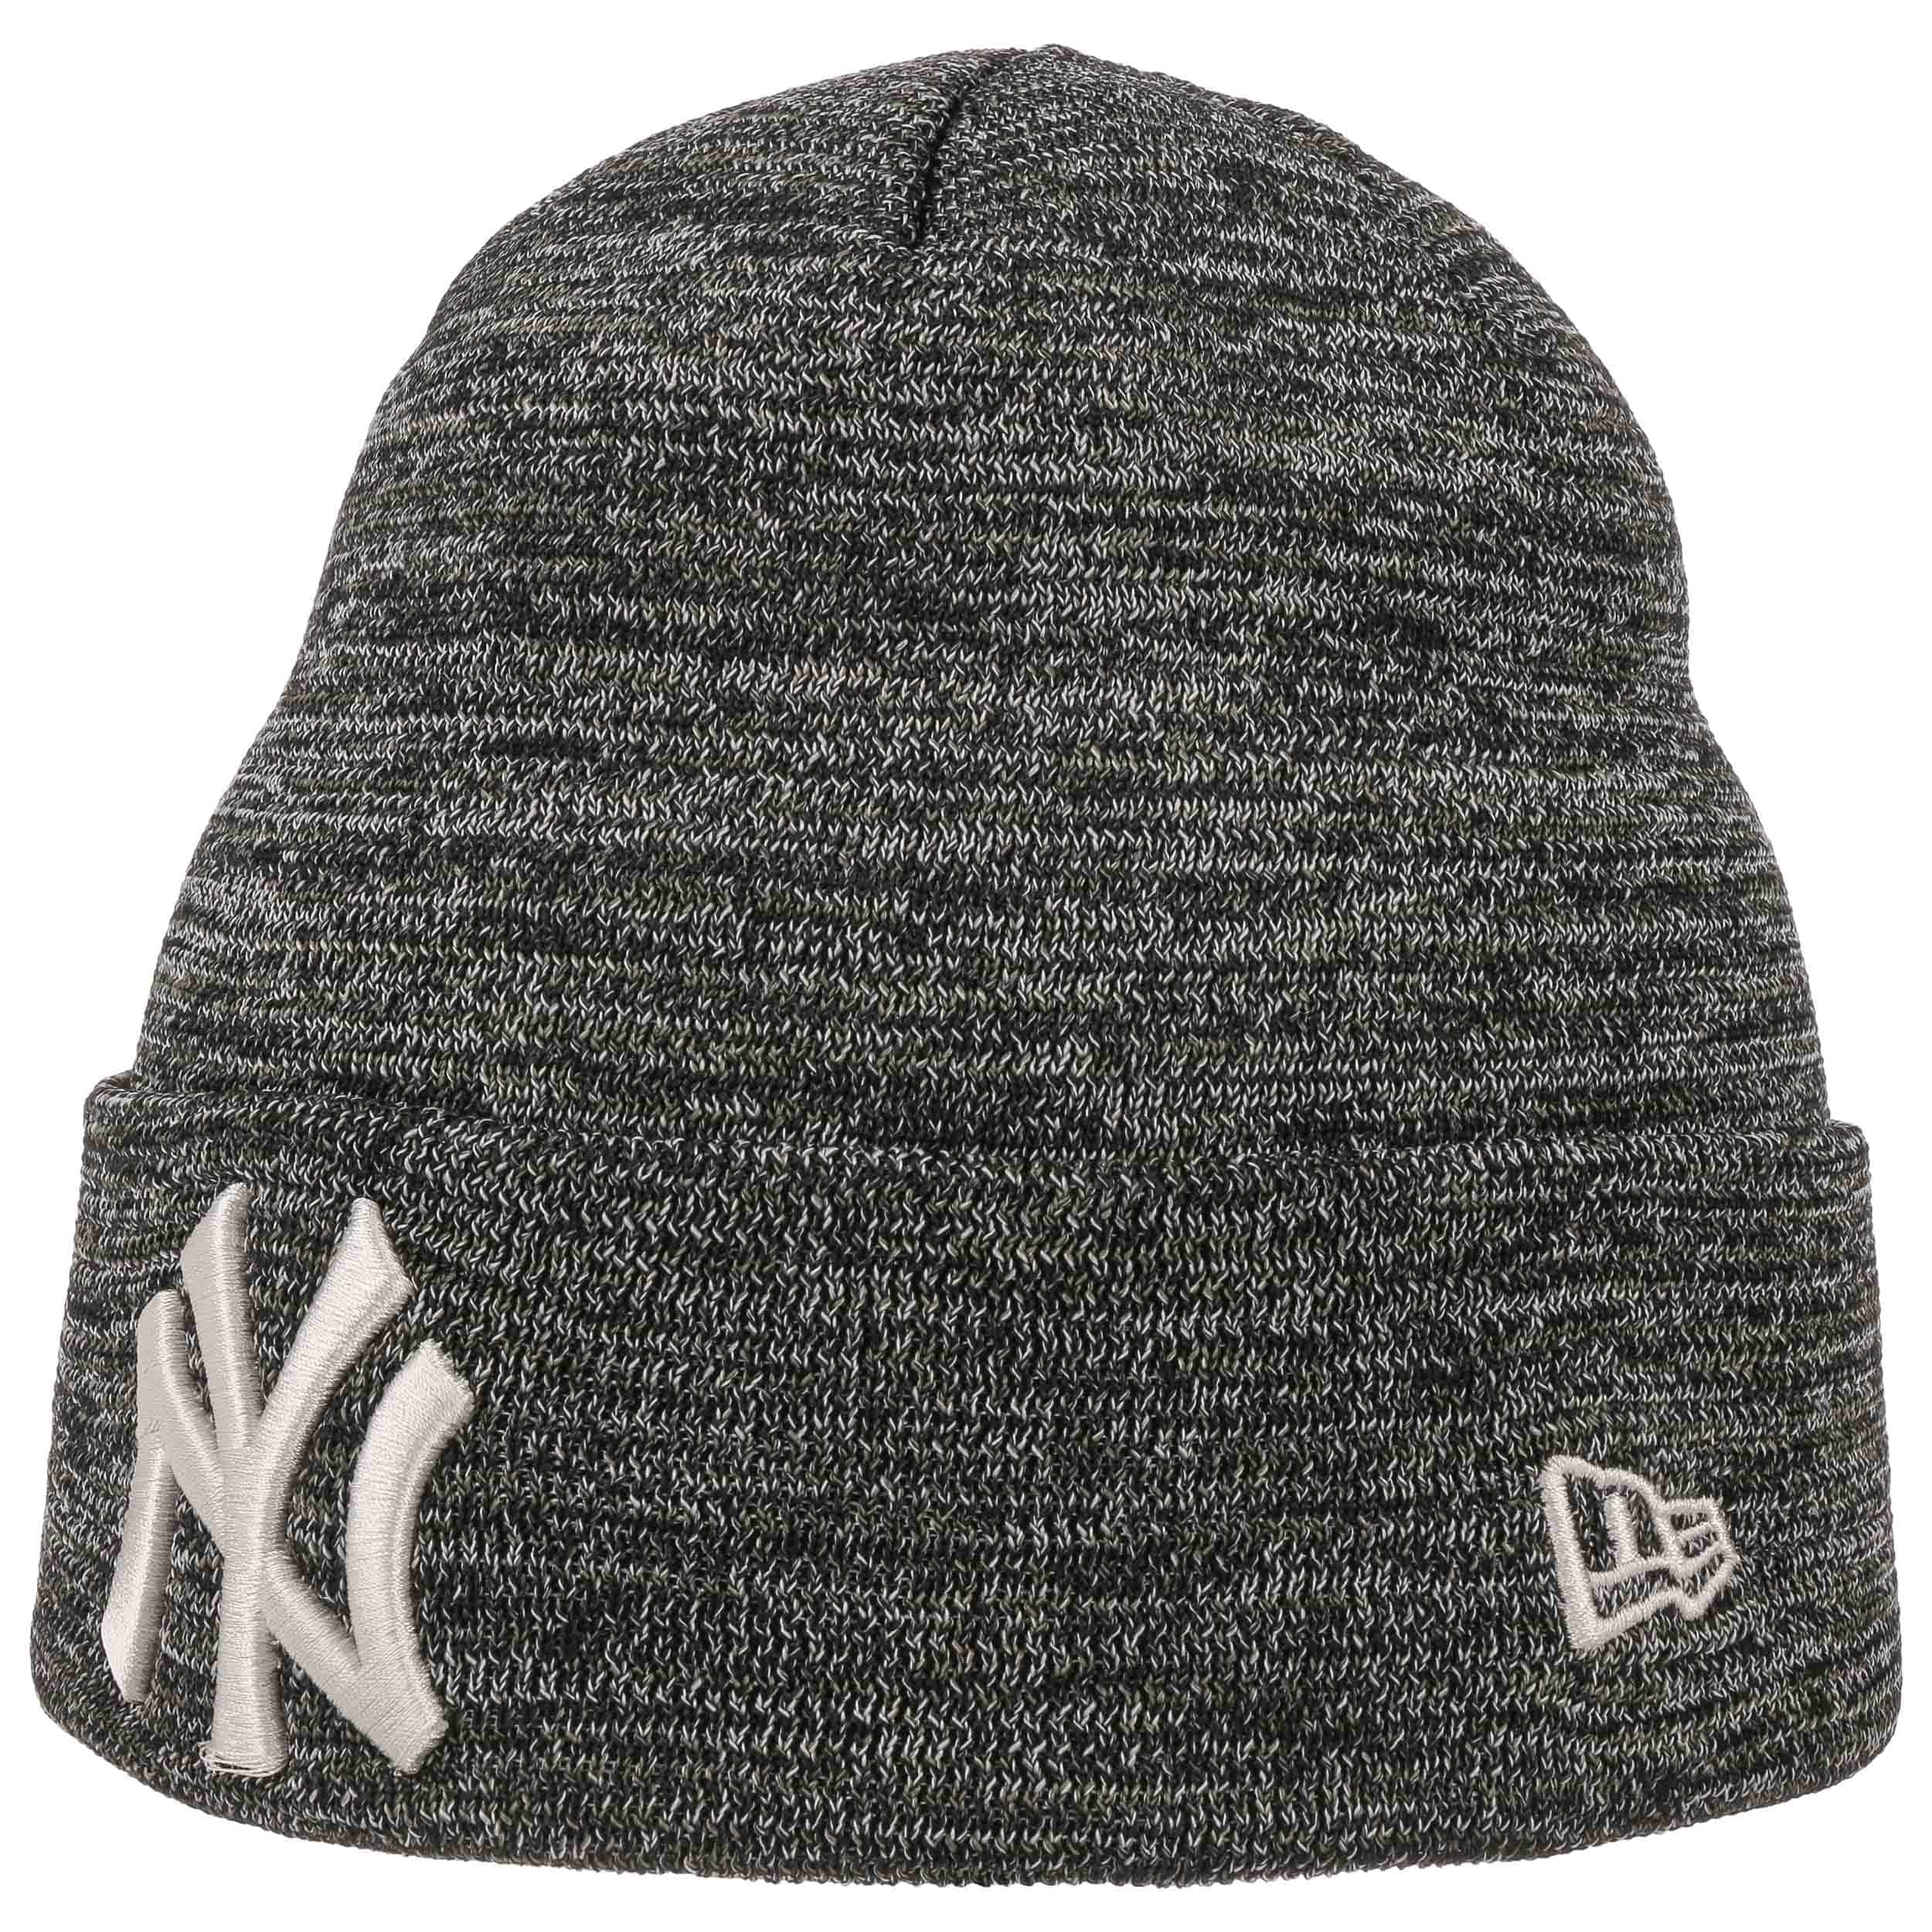 ... Berretto Beanie Eng Fit Cuff Yankees by New Era - nero 4 de7ae1425584